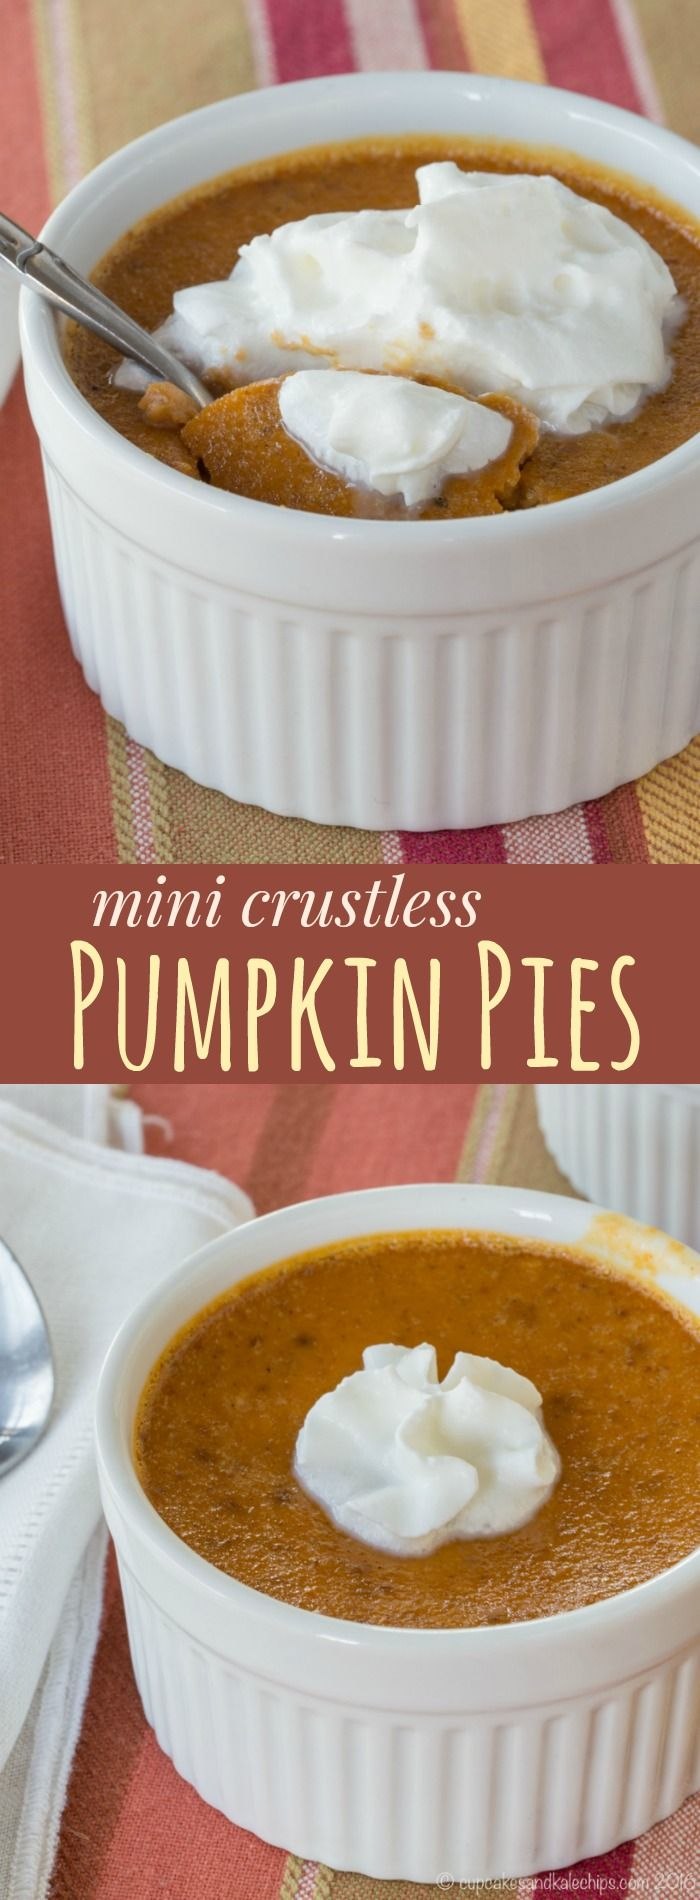 Mini Crustless Pumpkin Pies Recipe - Cupcakes & Kale Chips